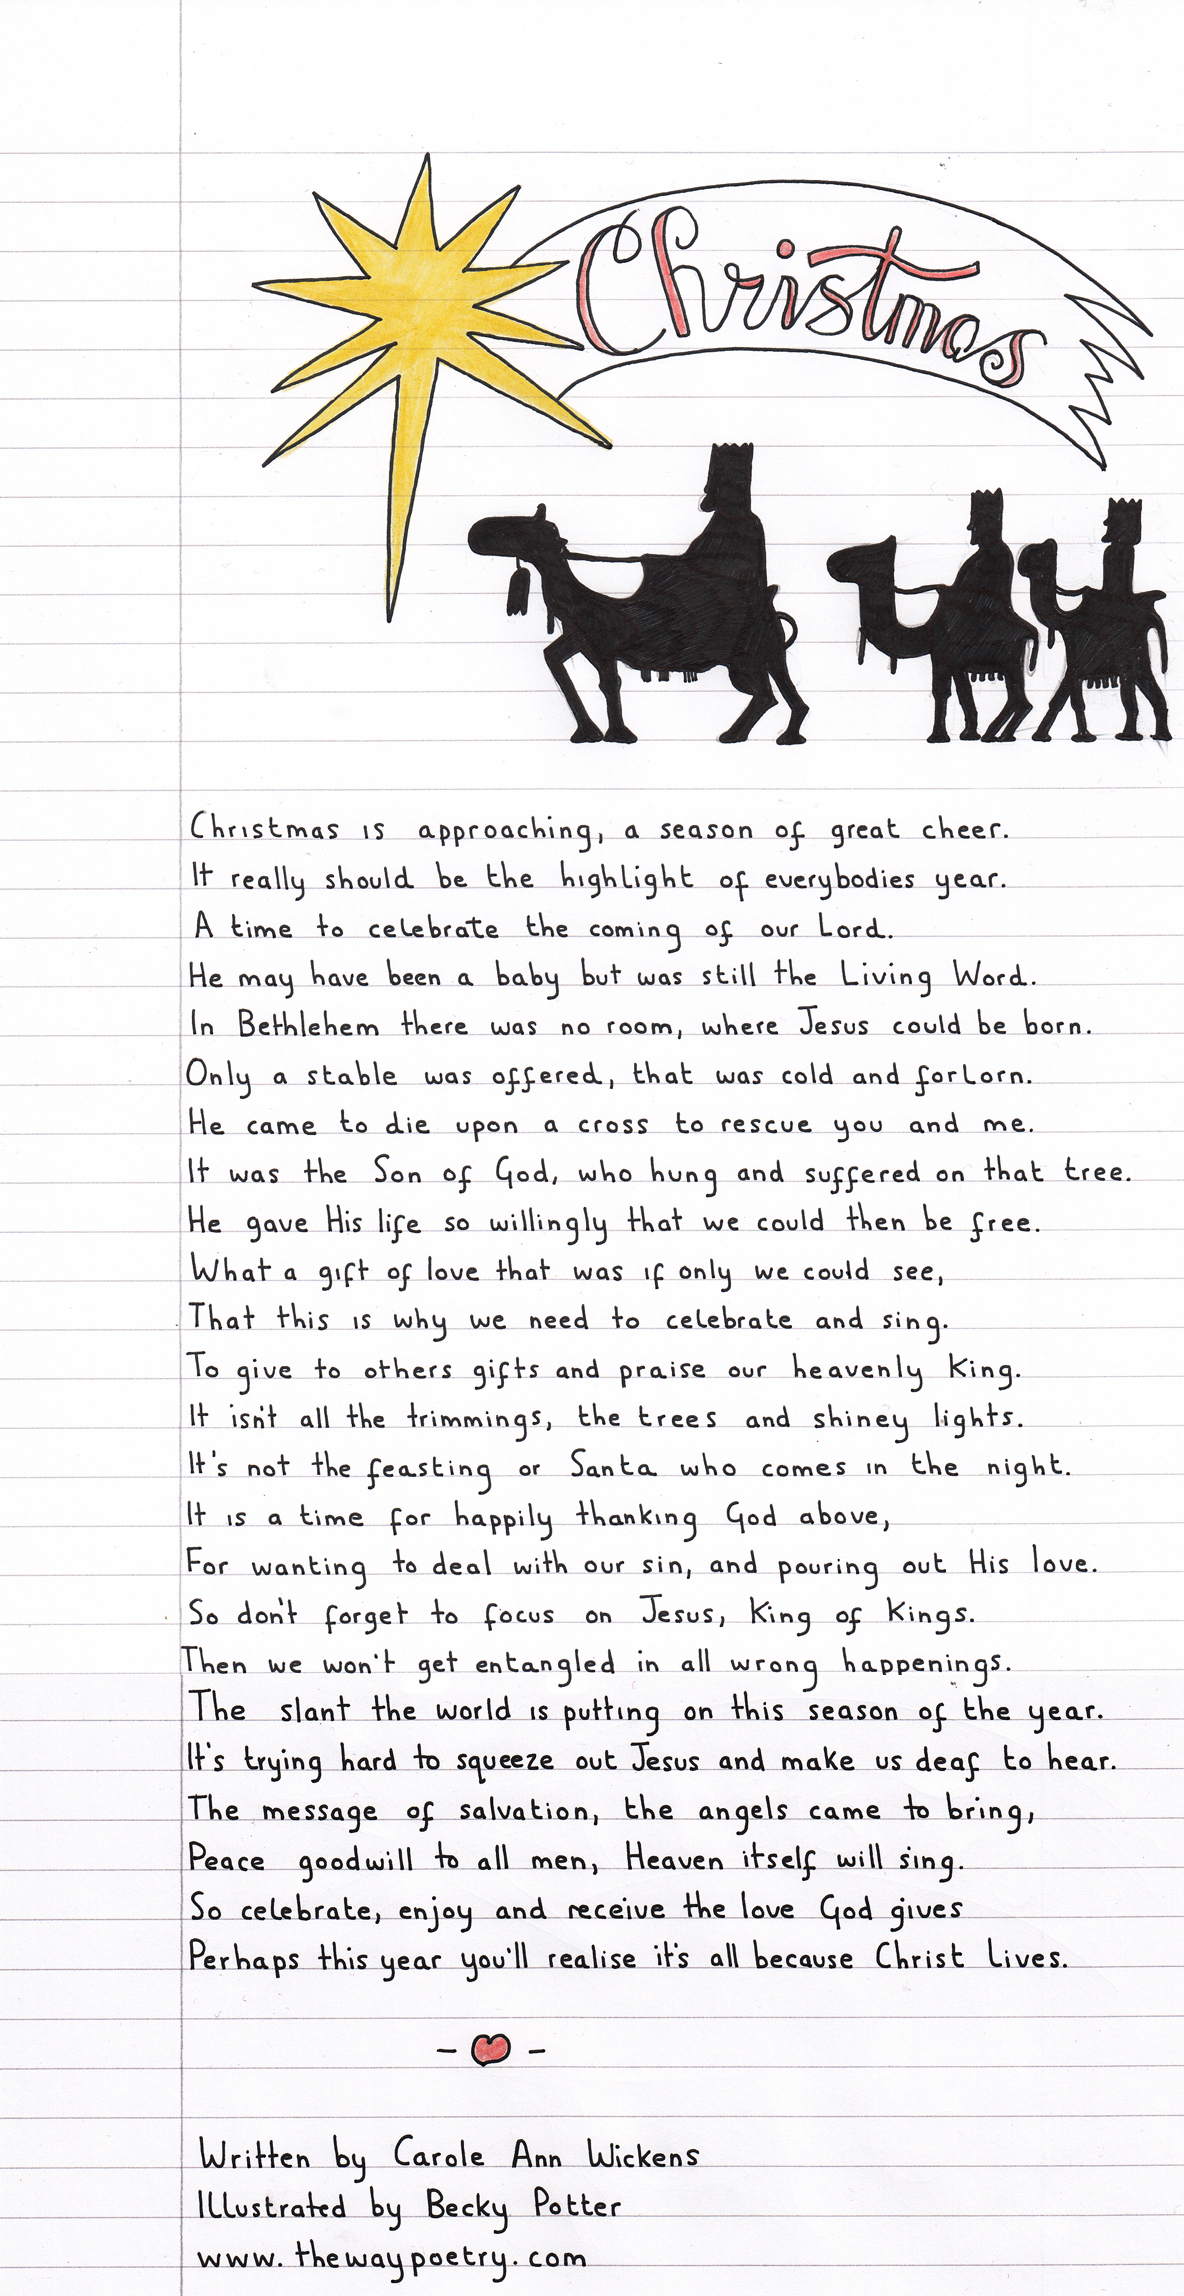 Christmas by Carole Ann Wickens